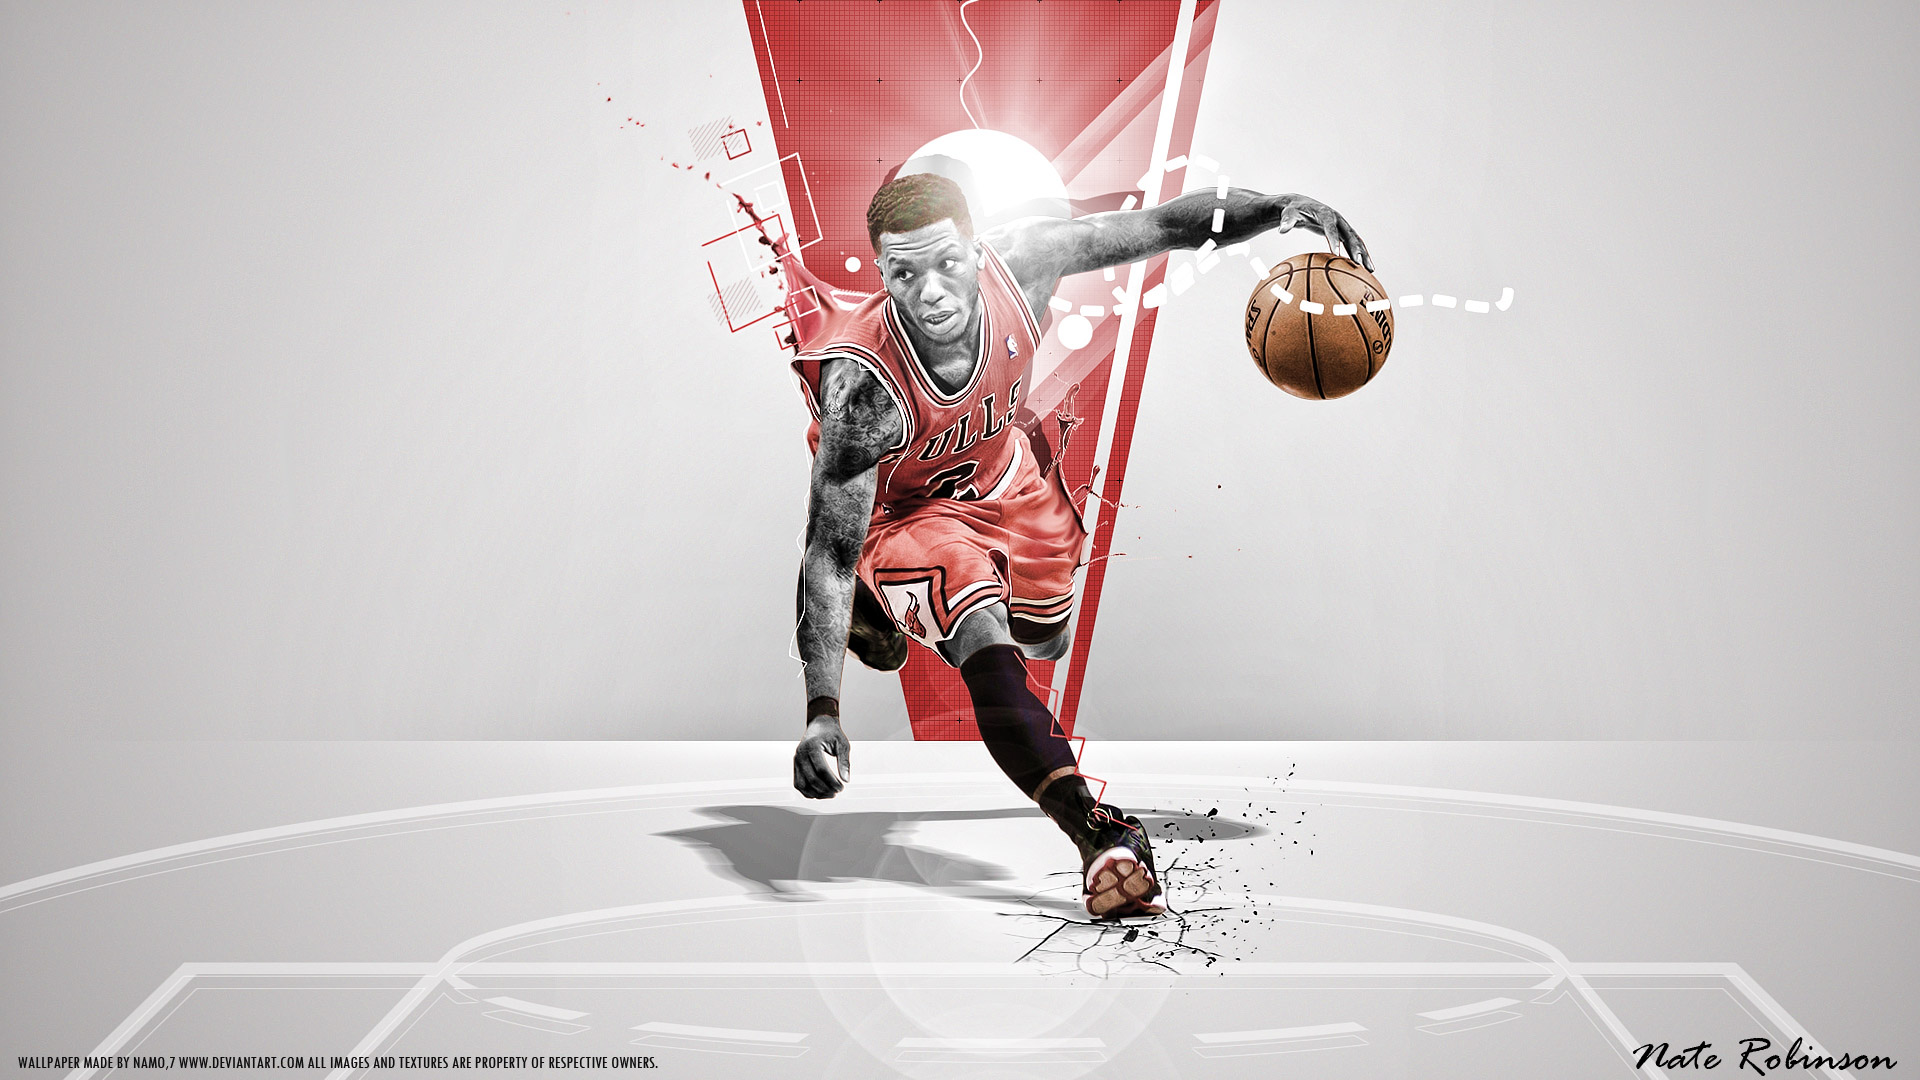 knicks nate robinson wallpaper - photo #34